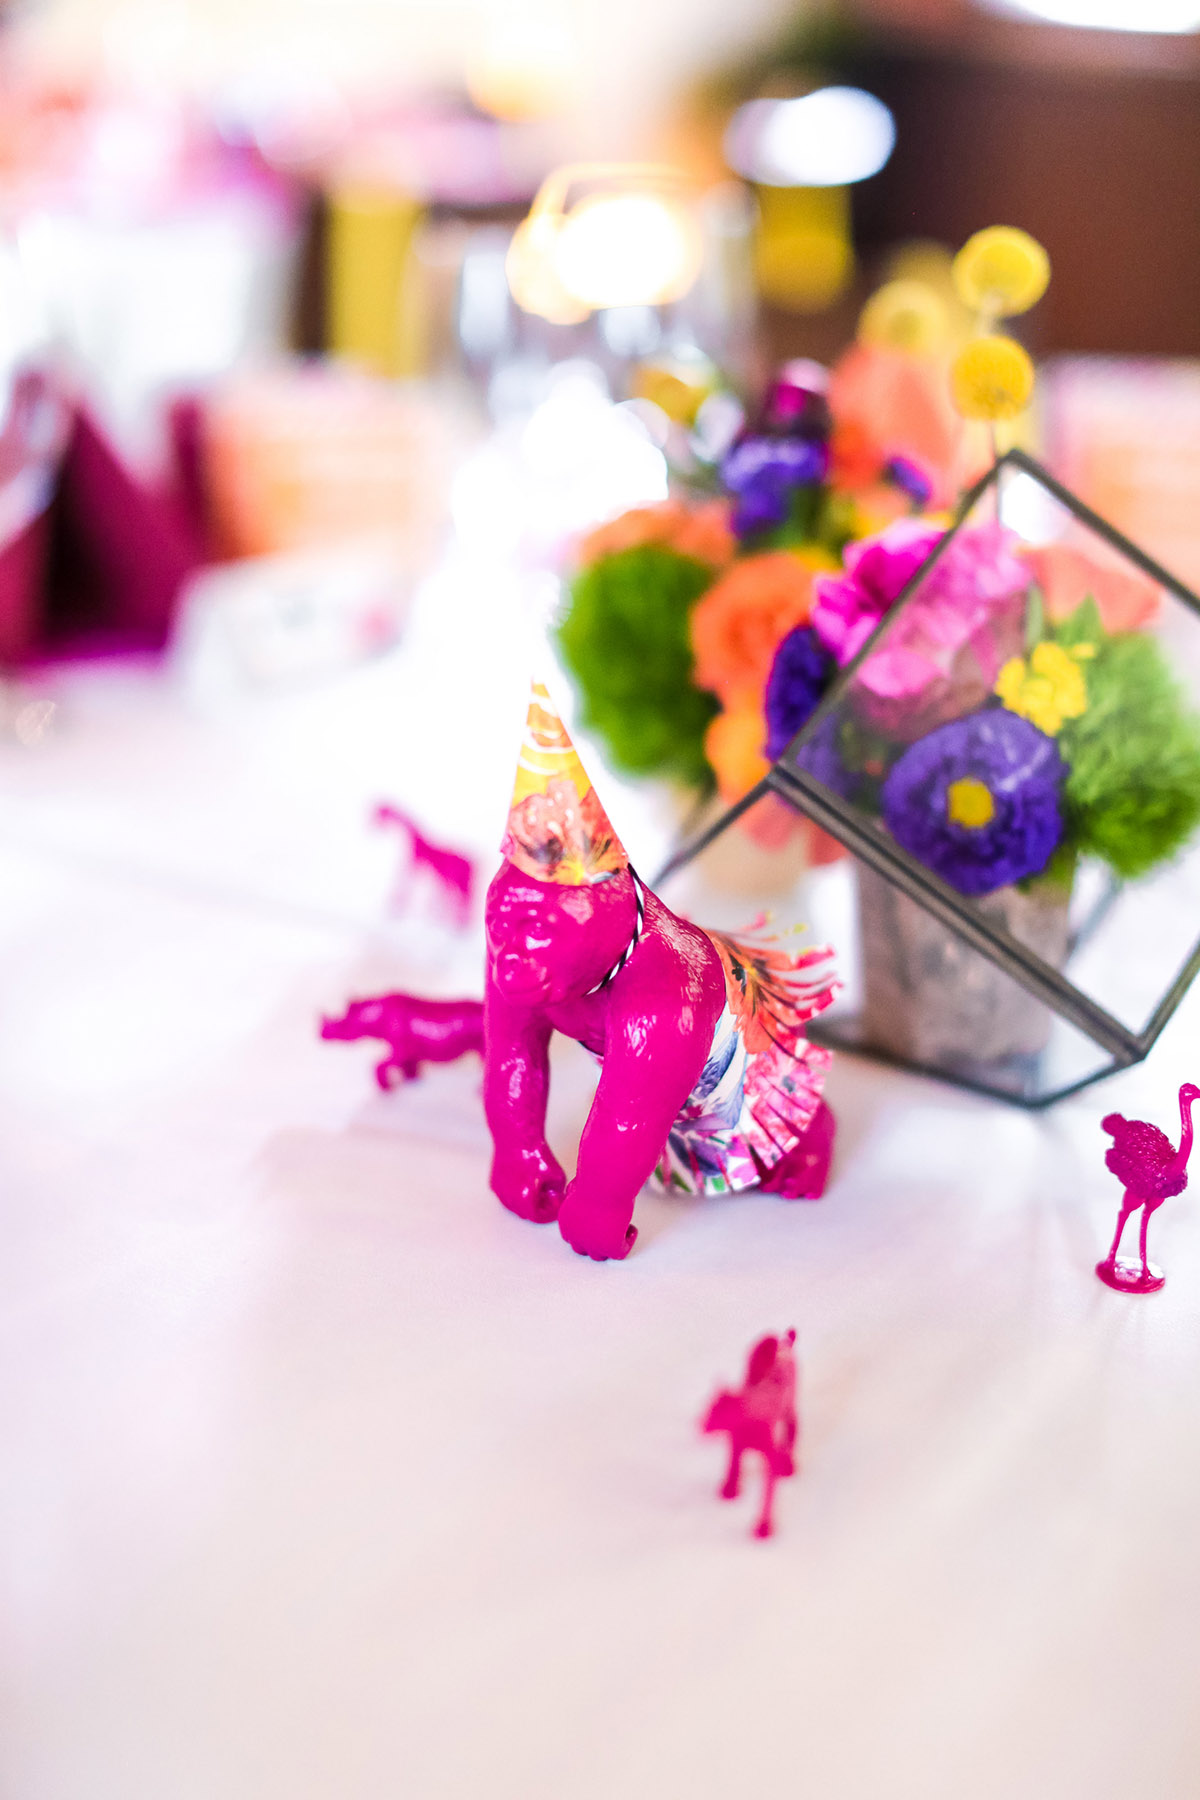 Party Animal Escort Table from A Well Crafted Party with photos by Mary Boyden